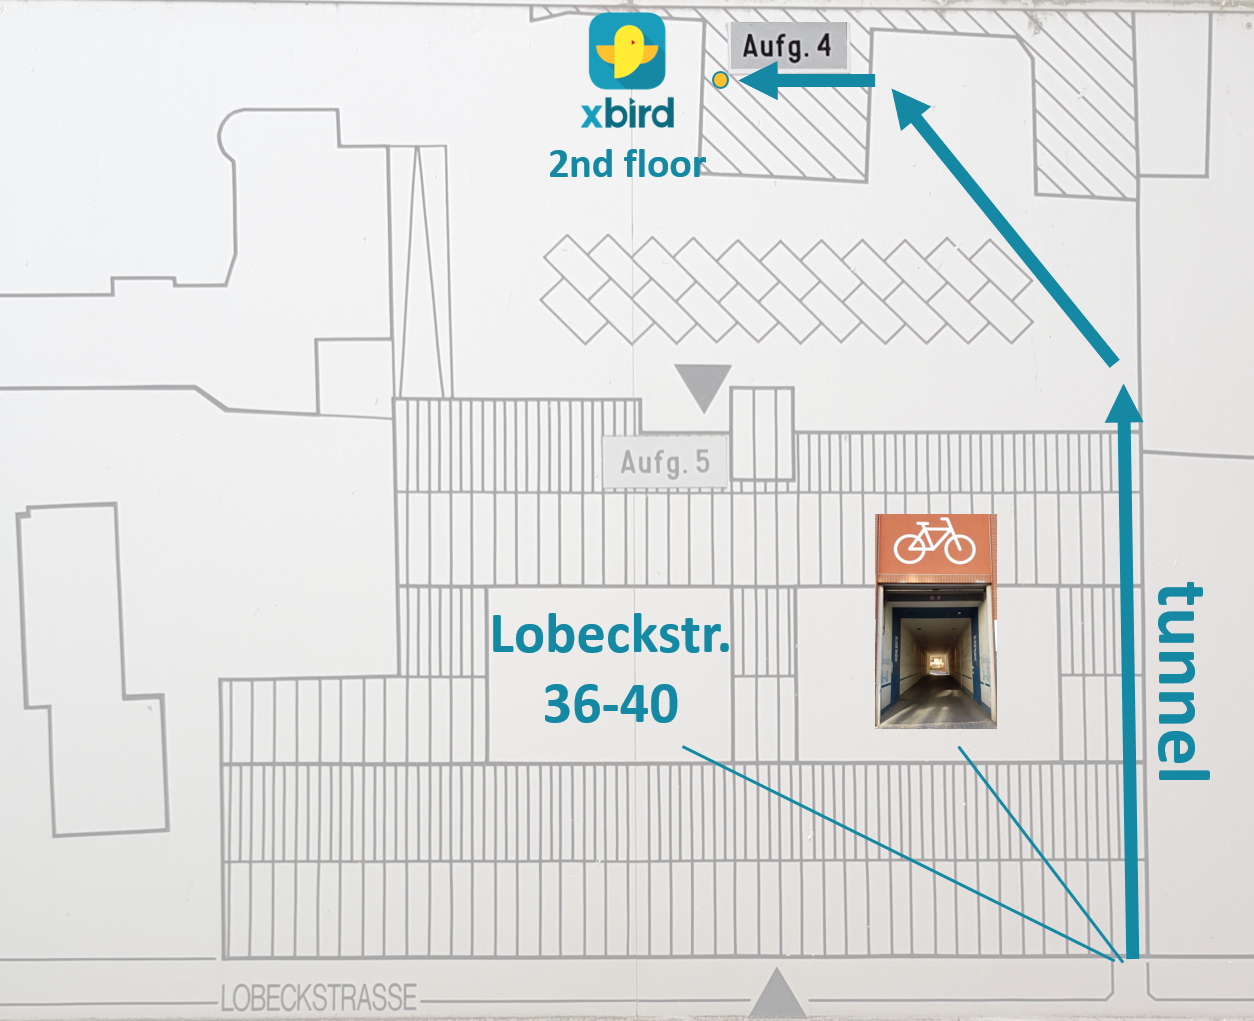 "- Directions: On Lobeckstraße go through the tunnel with the big bicycle sign (to numbers36-40). Then in the inner courtyard go straight and left to the staircase 4 (""Aufgang 4"") which is in another smaller tunnel. At staircase 4 (""Aufgang 4"") ring xbird's door bell, go to the second floor and go through the left door."